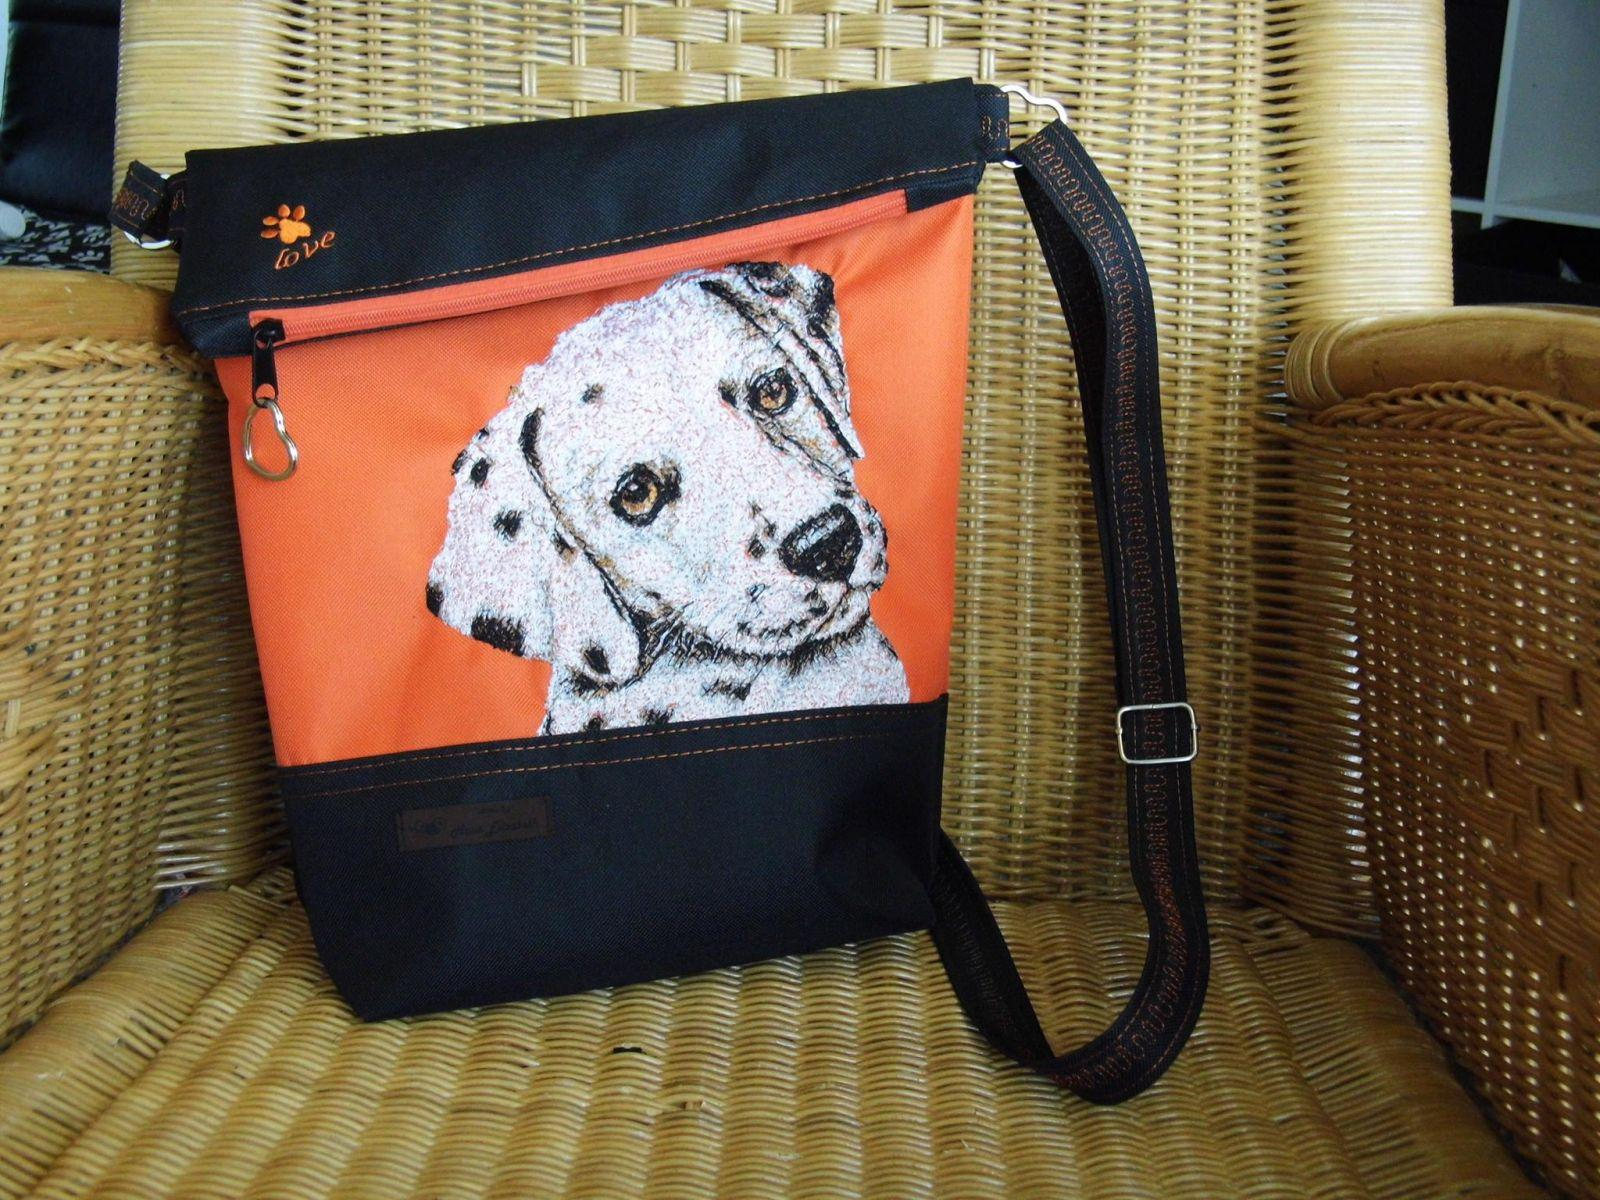 Bag with dog photo stitch free embroidery design